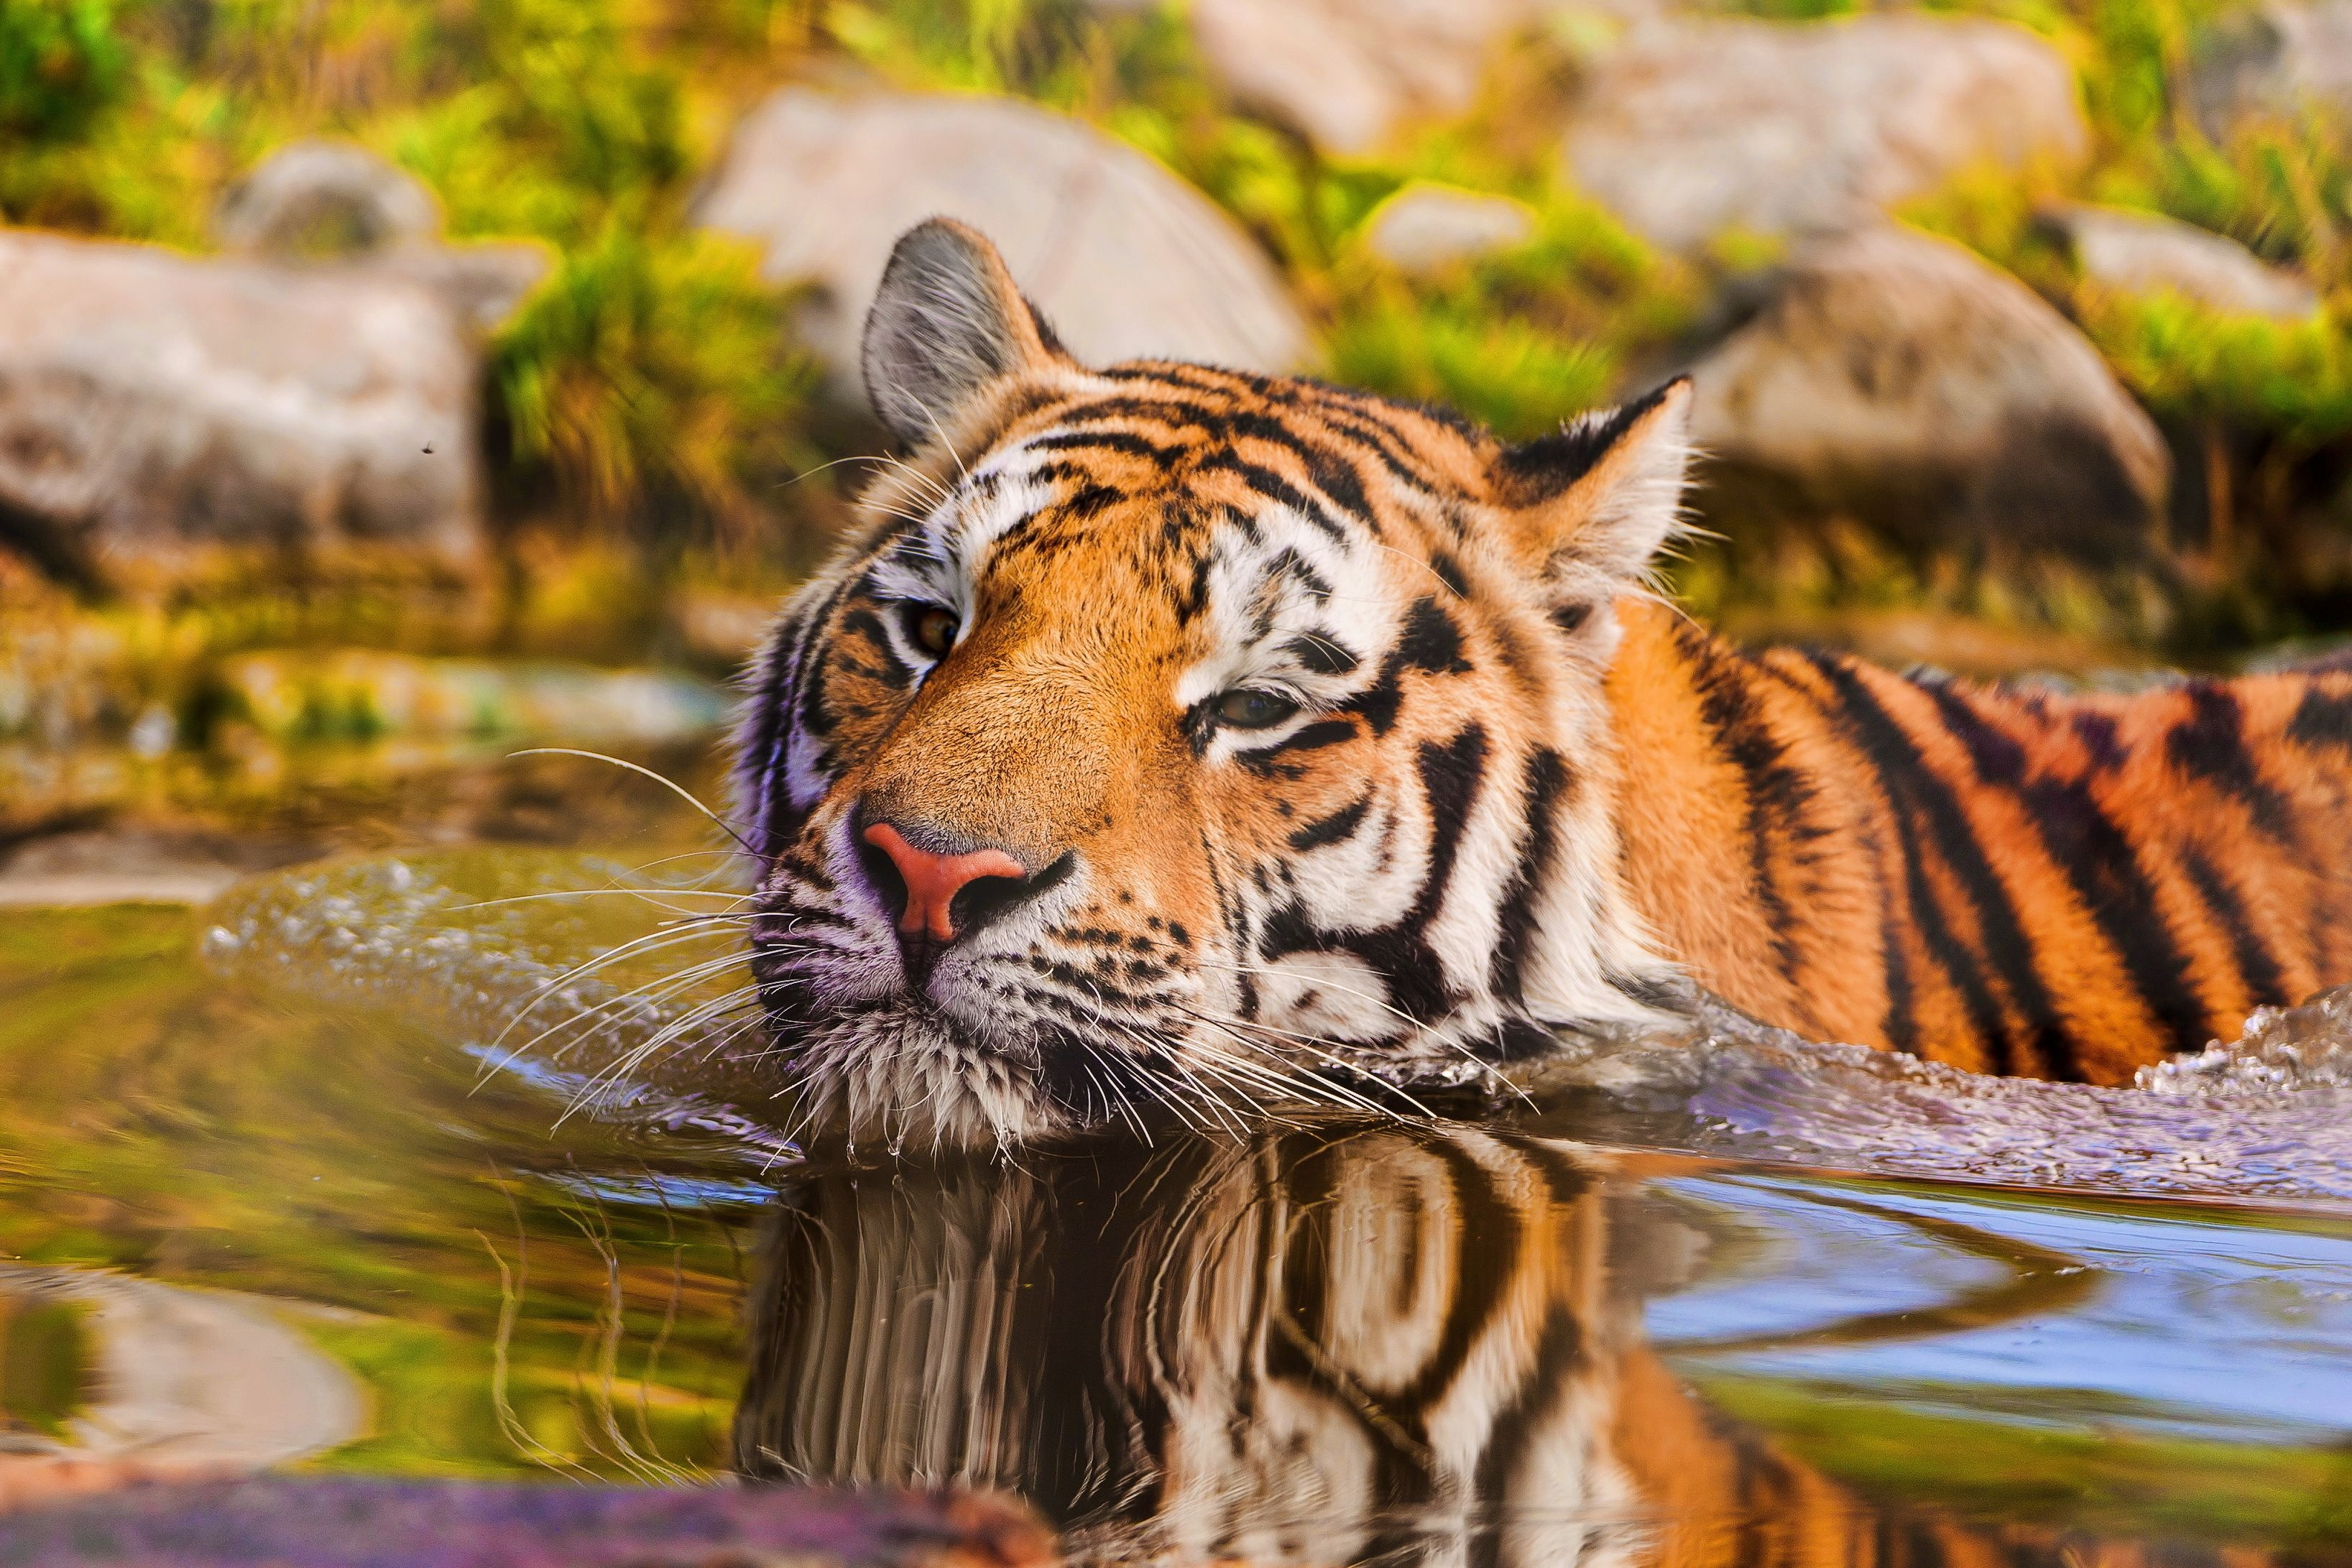 146366 download wallpaper Animals, Tiger, Muzzle, To Swim, Swim, Water screensavers and pictures for free